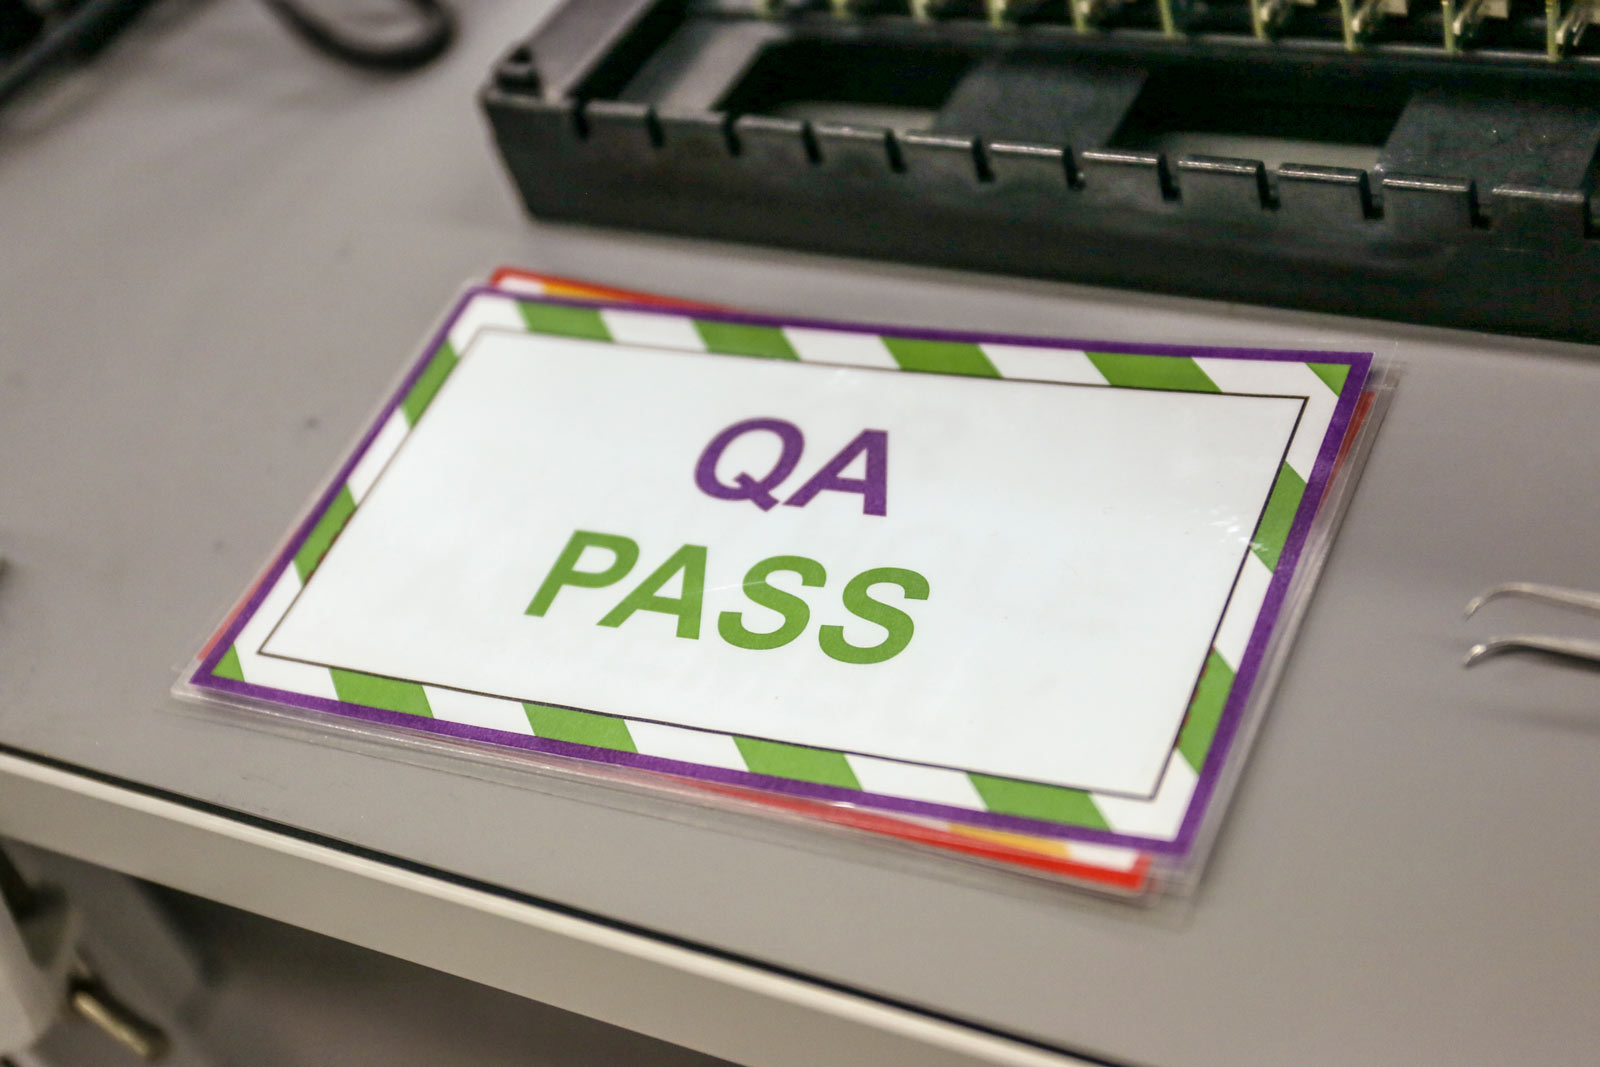 Quality & Process - QA Pass